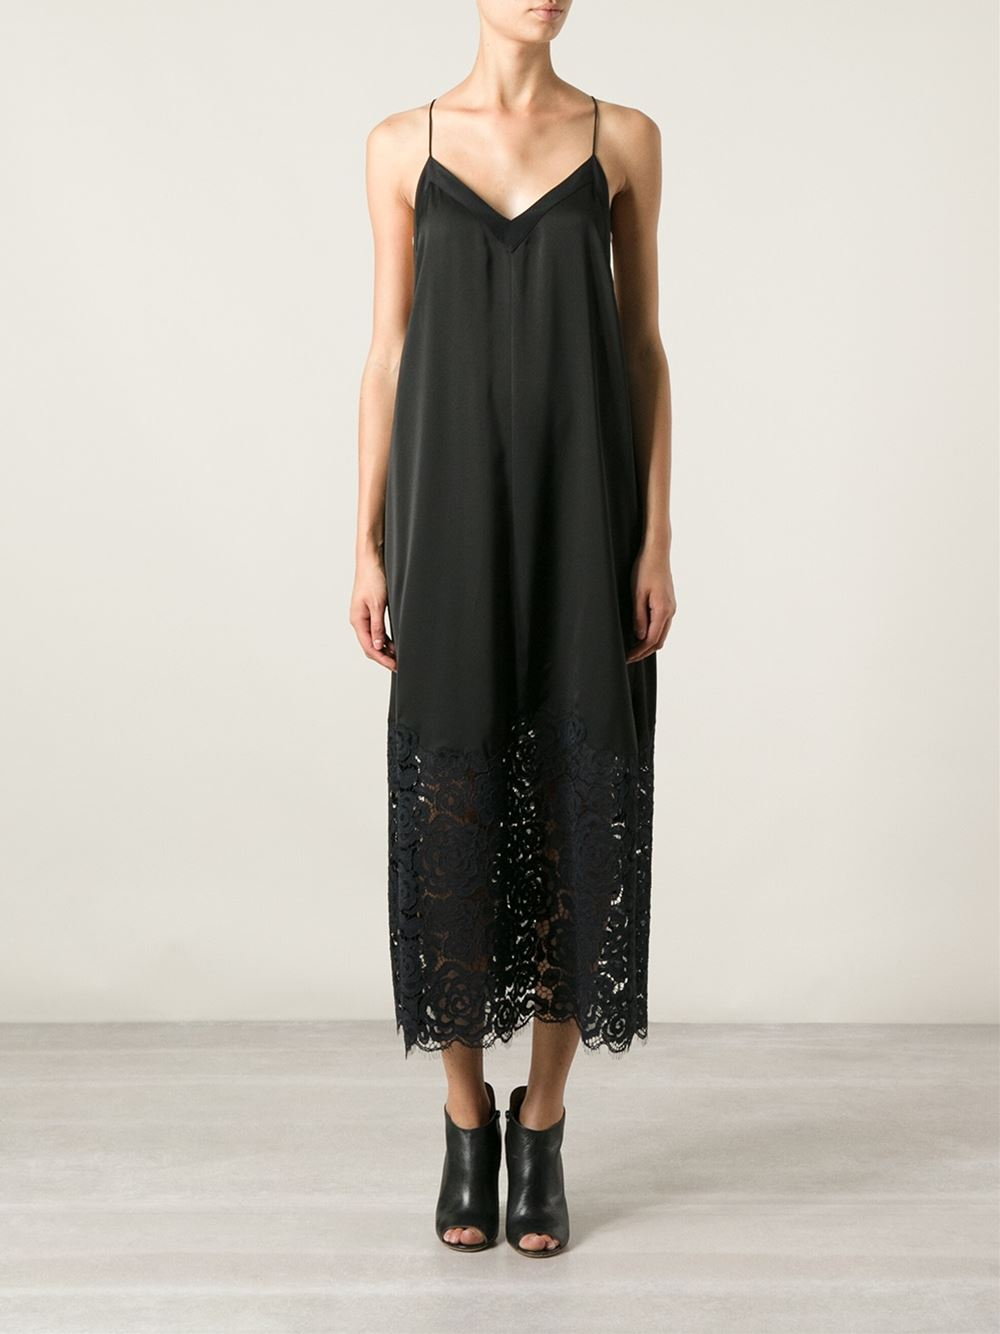 Dkny Lace Insert Long Slip Dress In Black Lyst